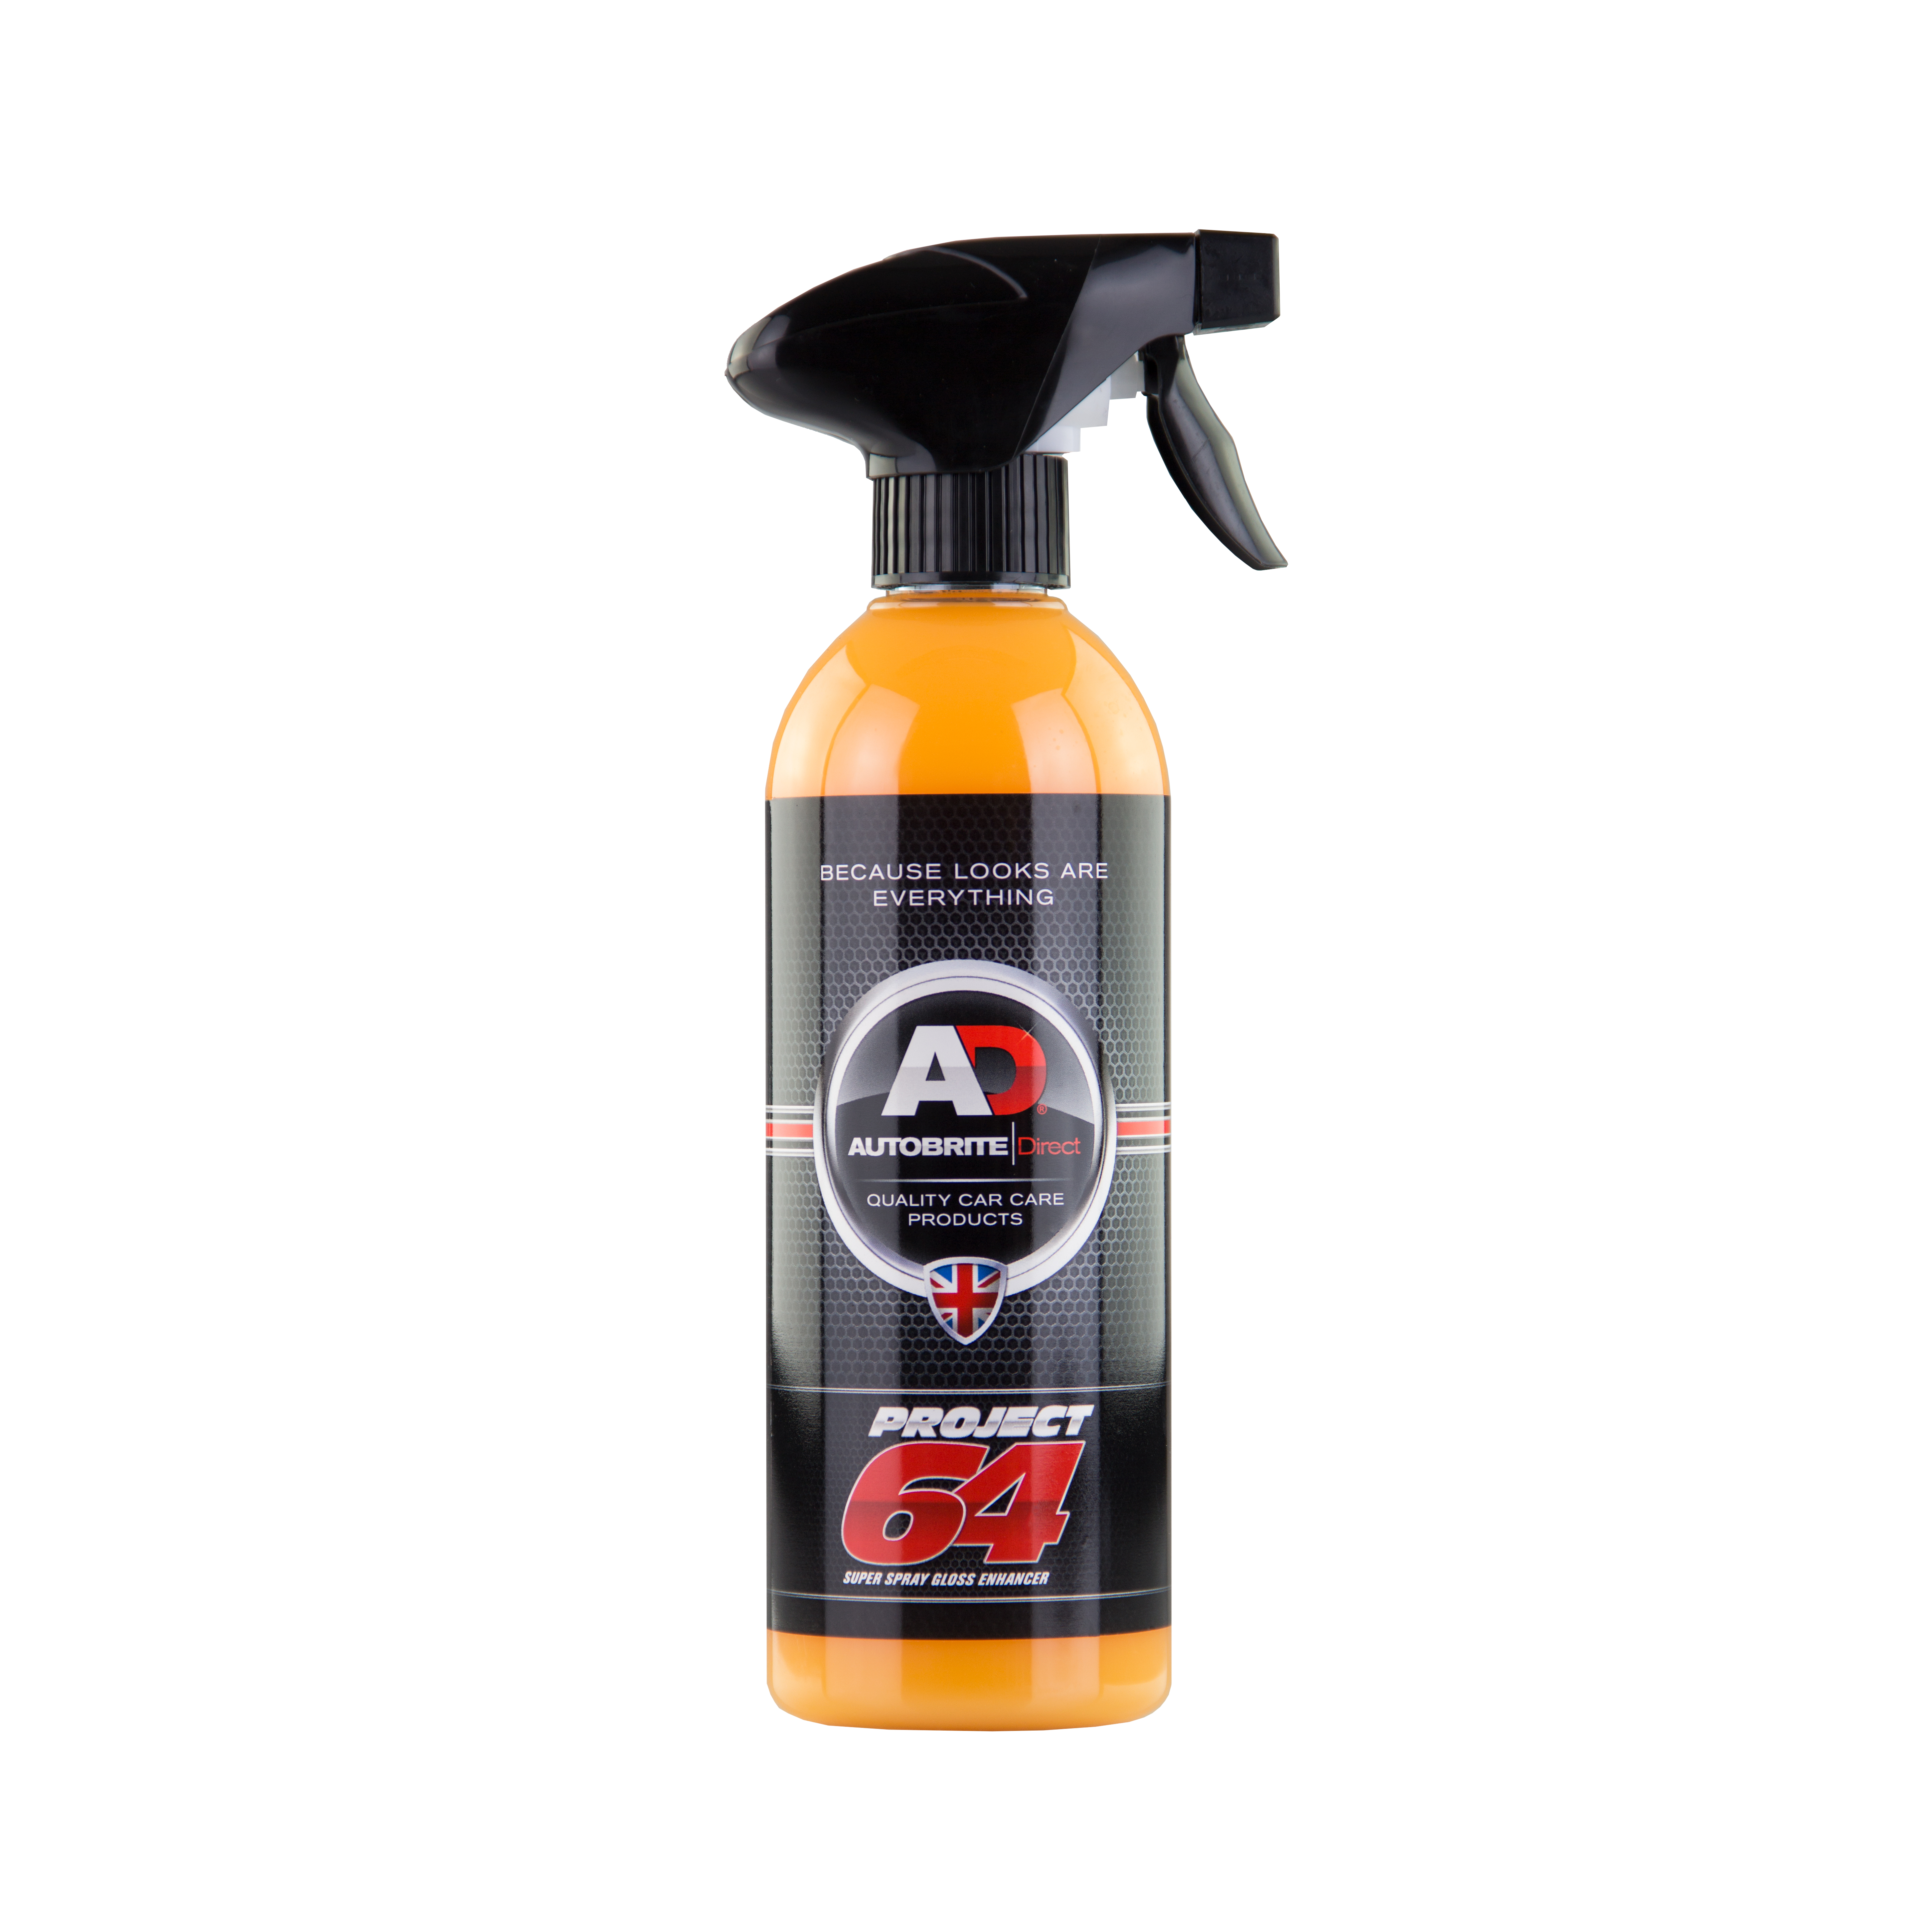 Details about ADPRO64500M456 0 5L Project 64 Super Spray Gloss Enhancer  500ml Autobrite Direct